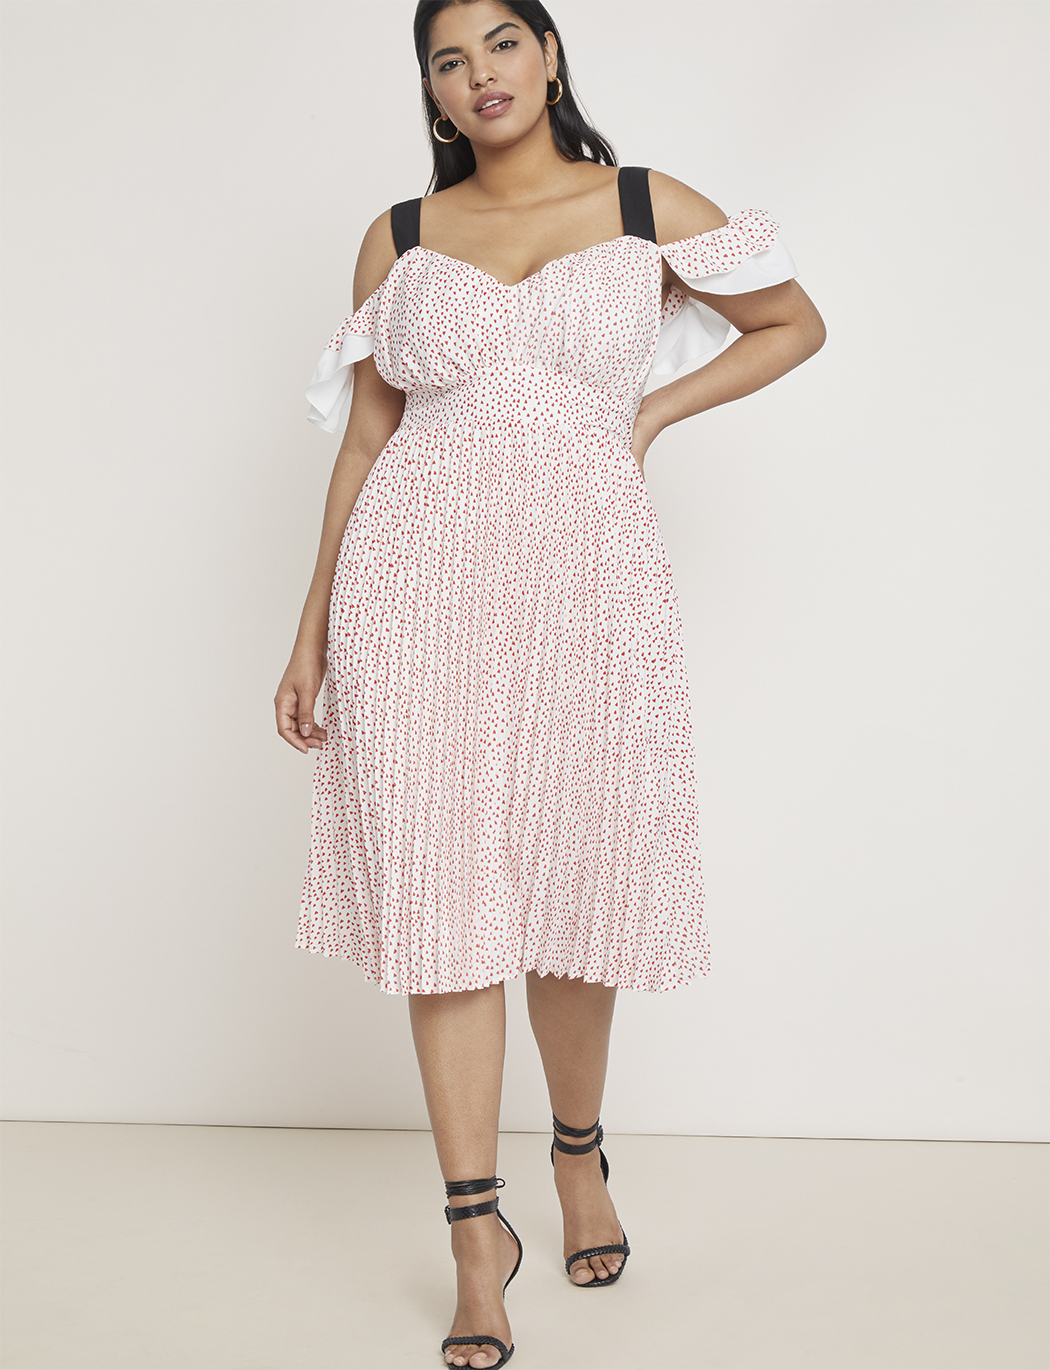 Contrast Strap Cold Shoulder Dress | Women\'s Plus Size Dresses | ELOQUII